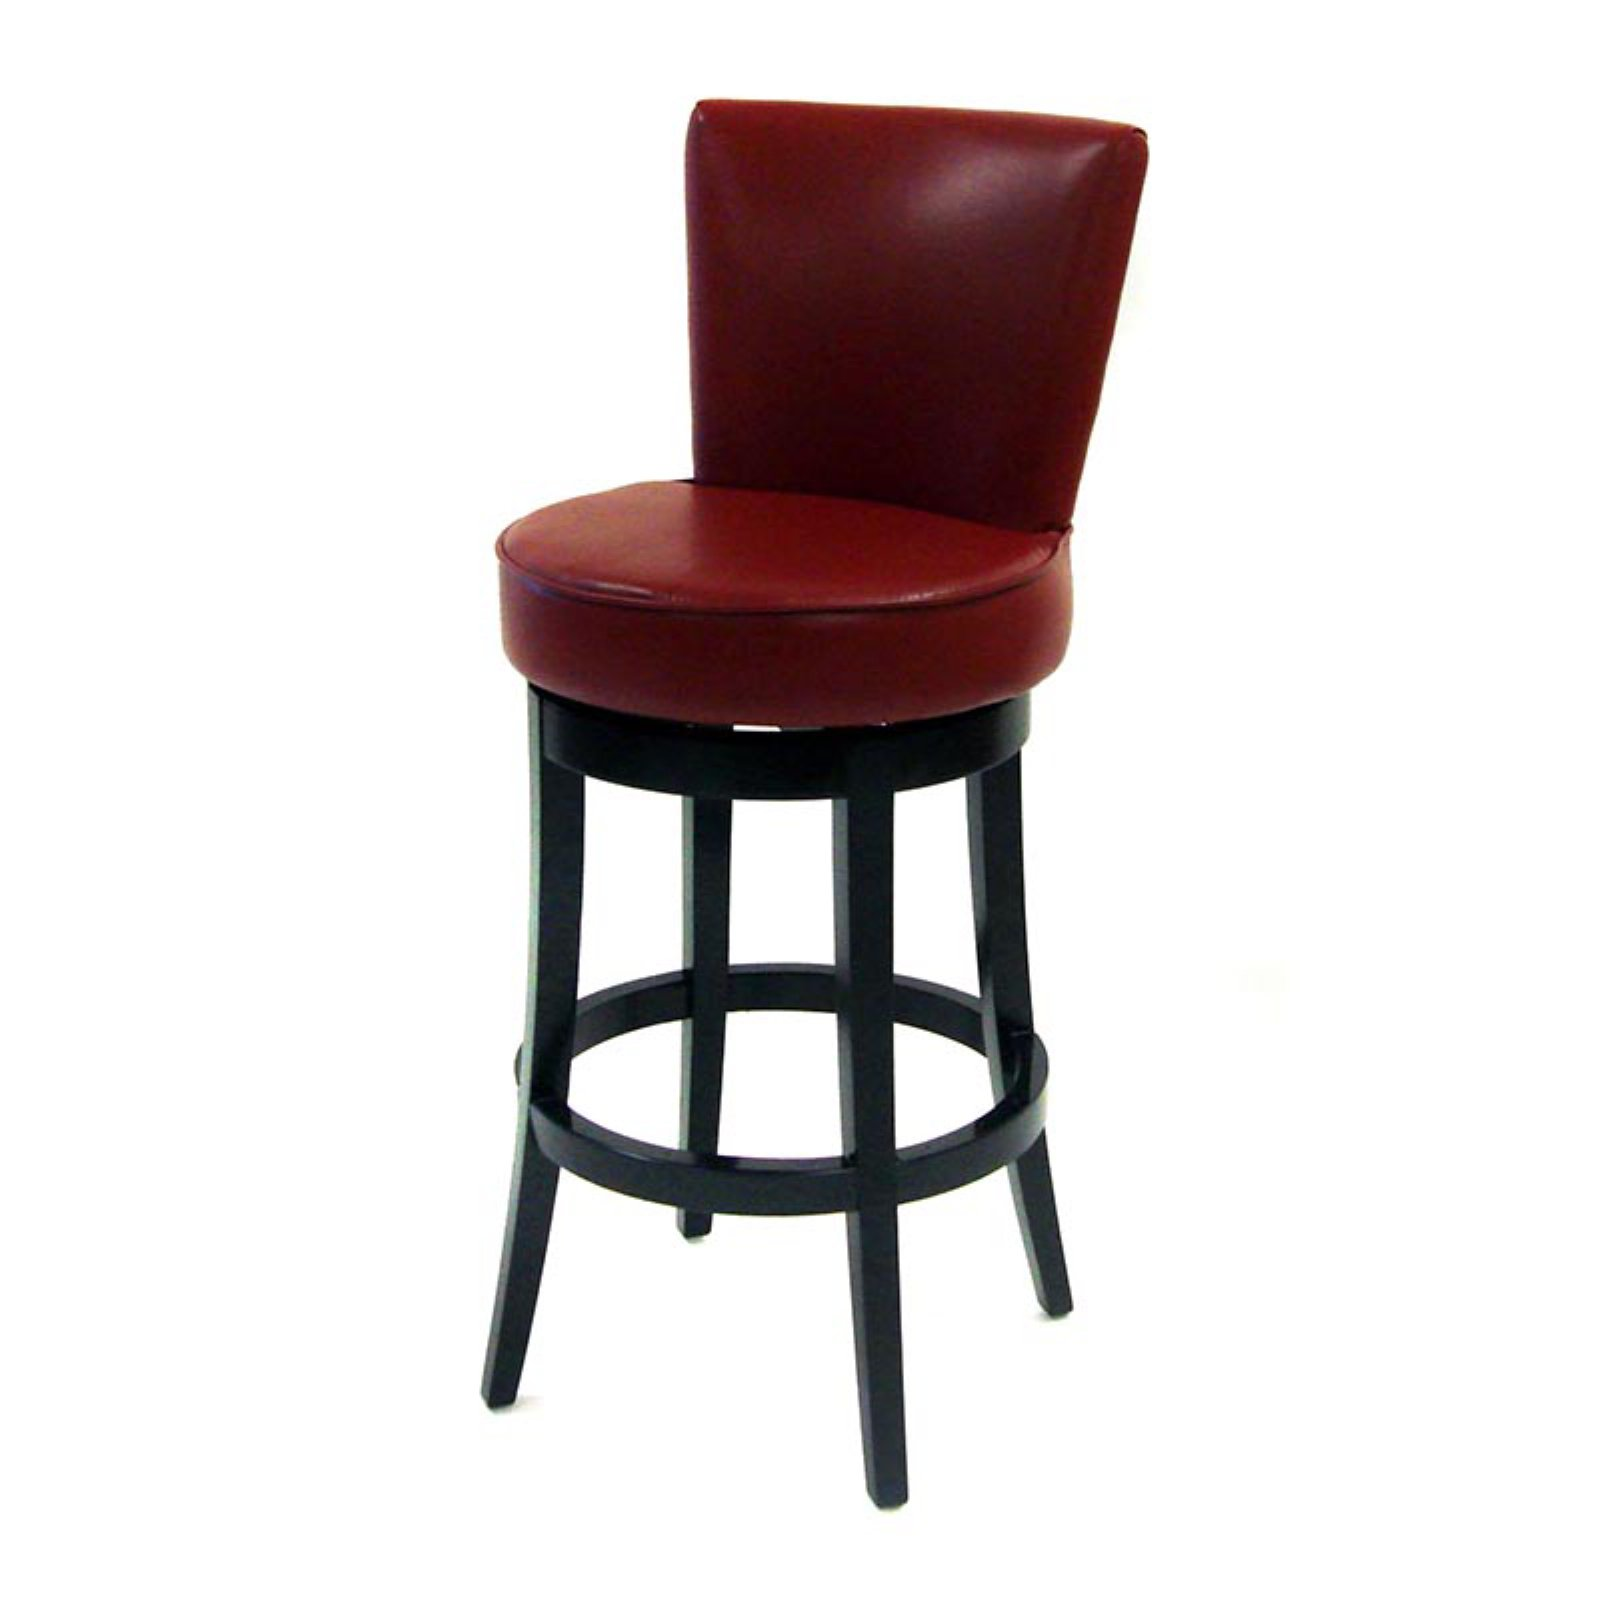 Boston Swivel Barstool, Red Bicast Leather, ...